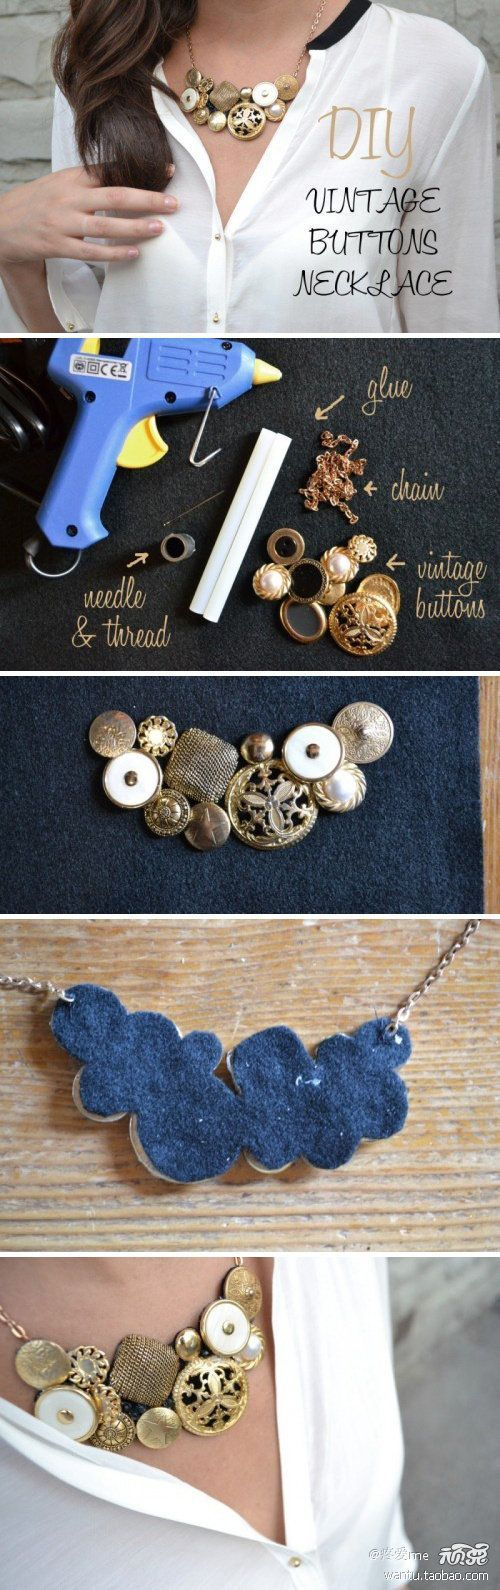 11 Easy DIY Buttons Jewelry Projects Making Jewelry from Buttons